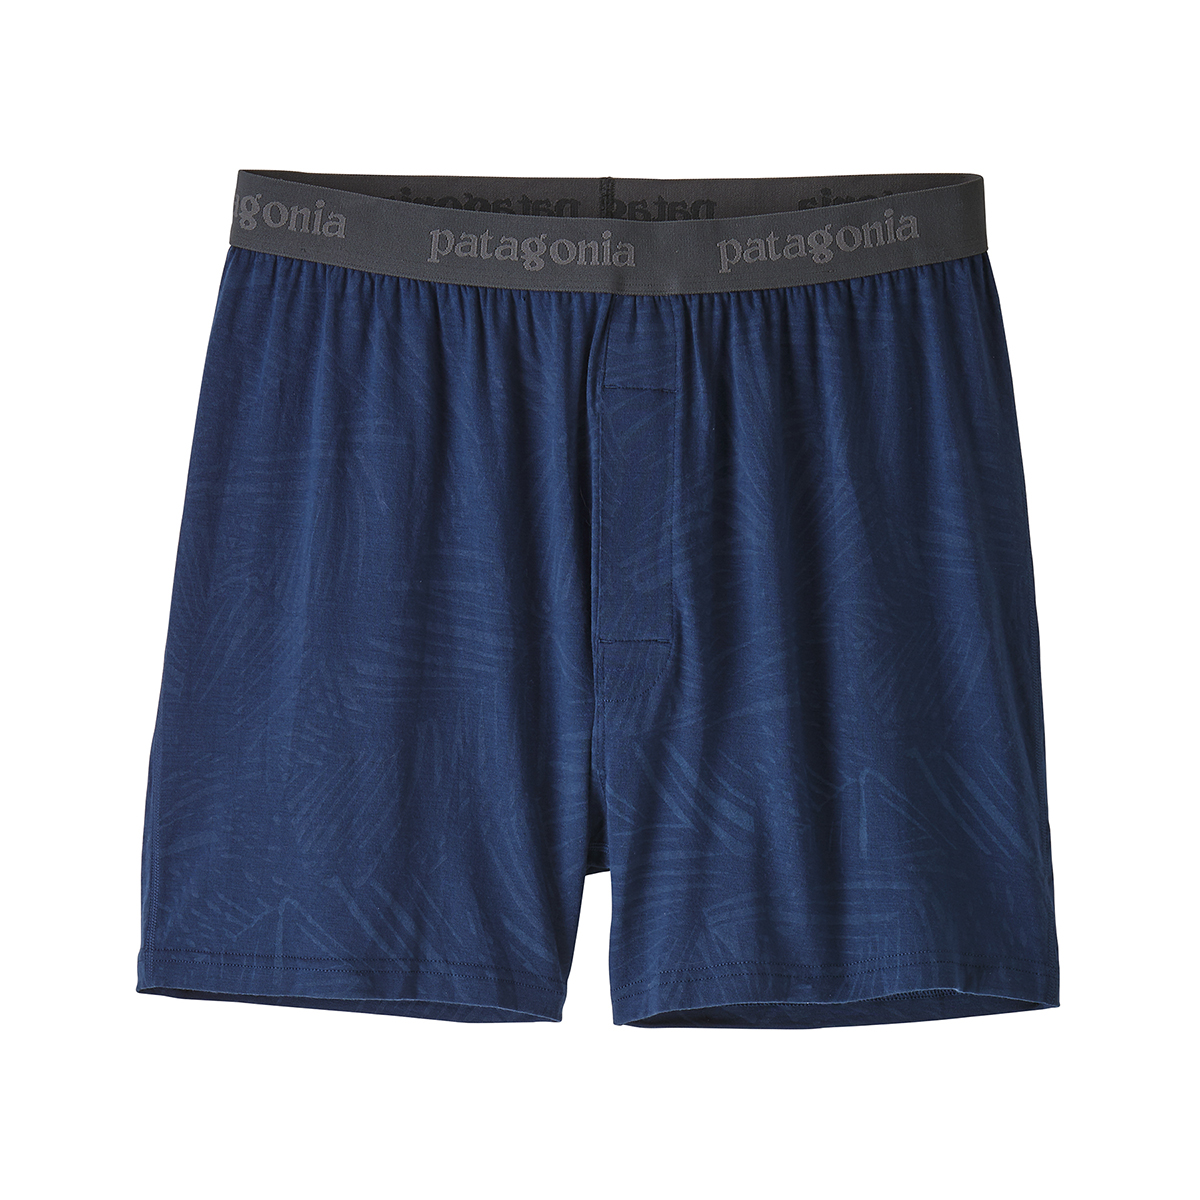 Patagonia Men's Essential Boxers 32550